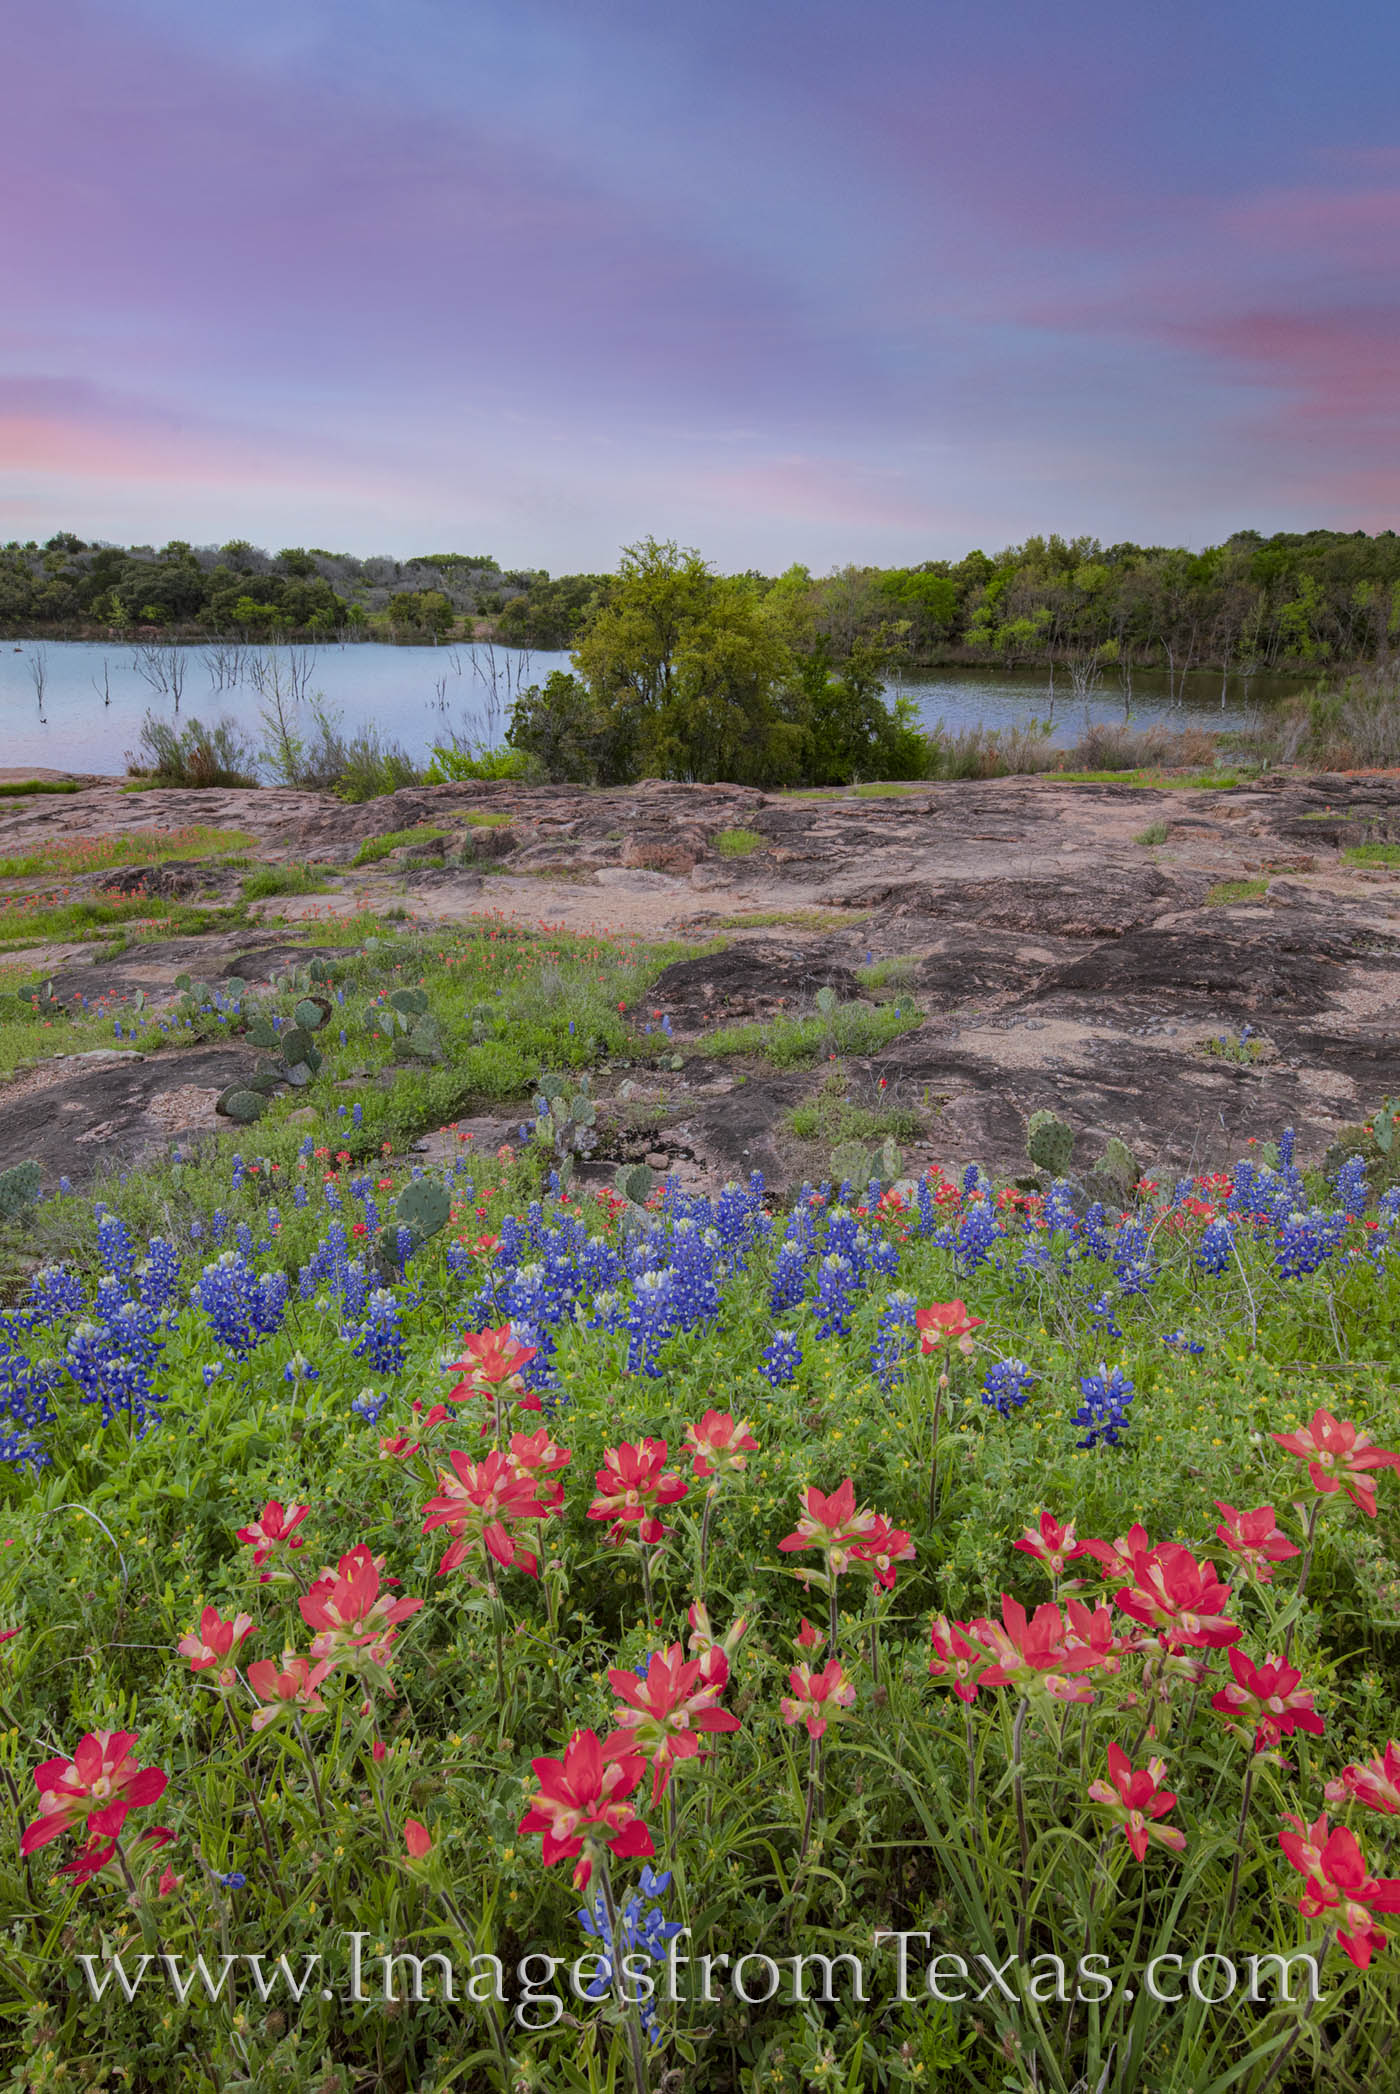 bluebonnets, paintbrush, inks lake, state parks, sunset, hill country drives, peace, photo